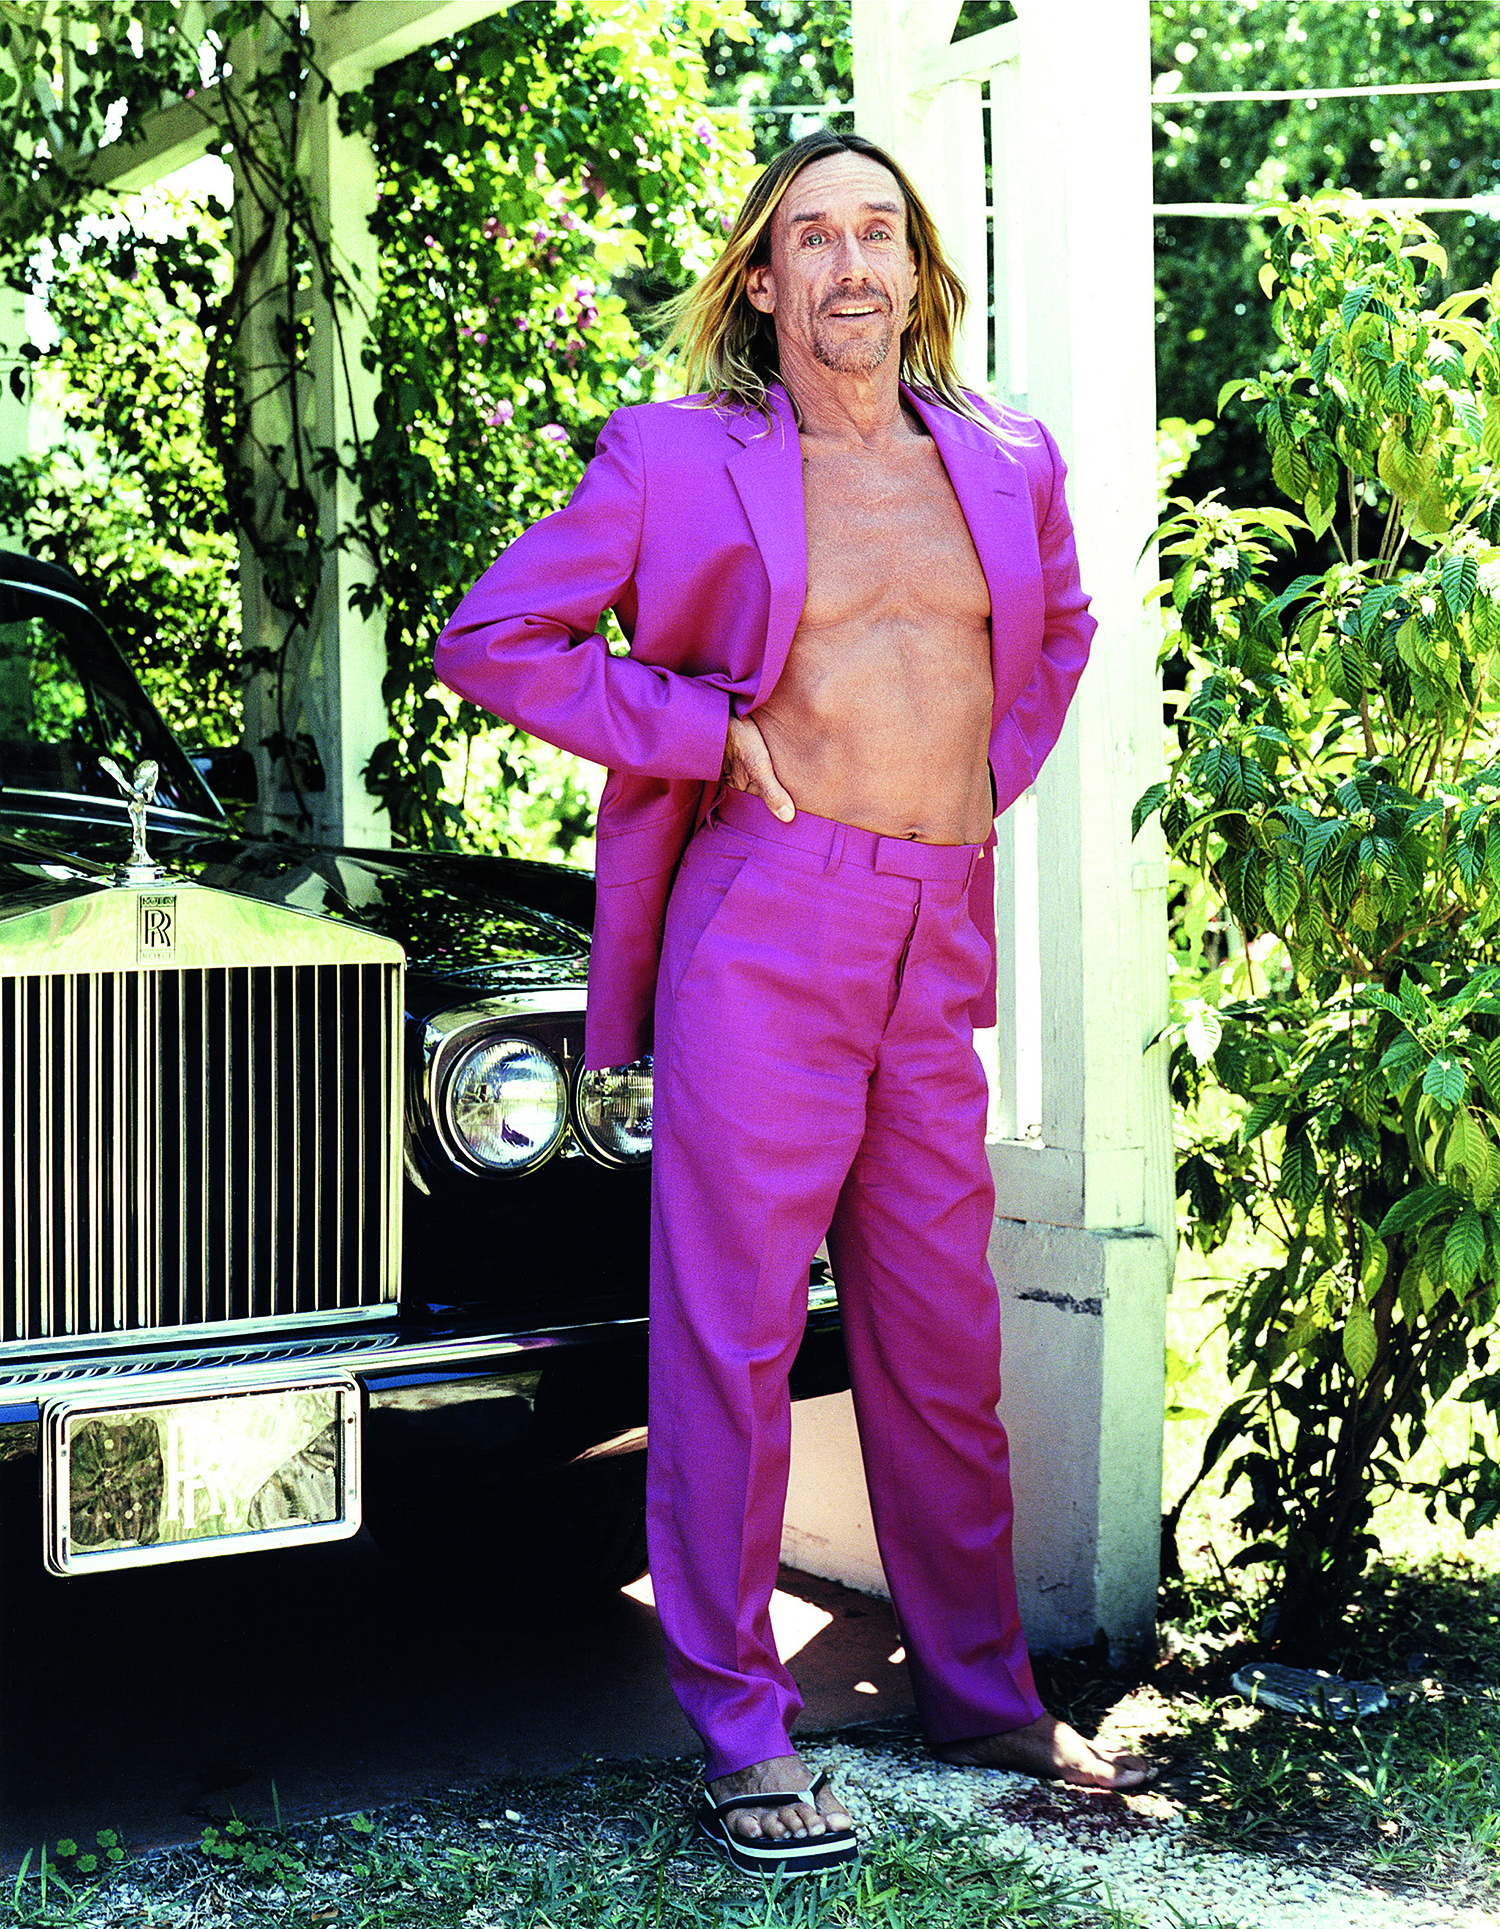 iggy pop_cover_GettyImages-53325891